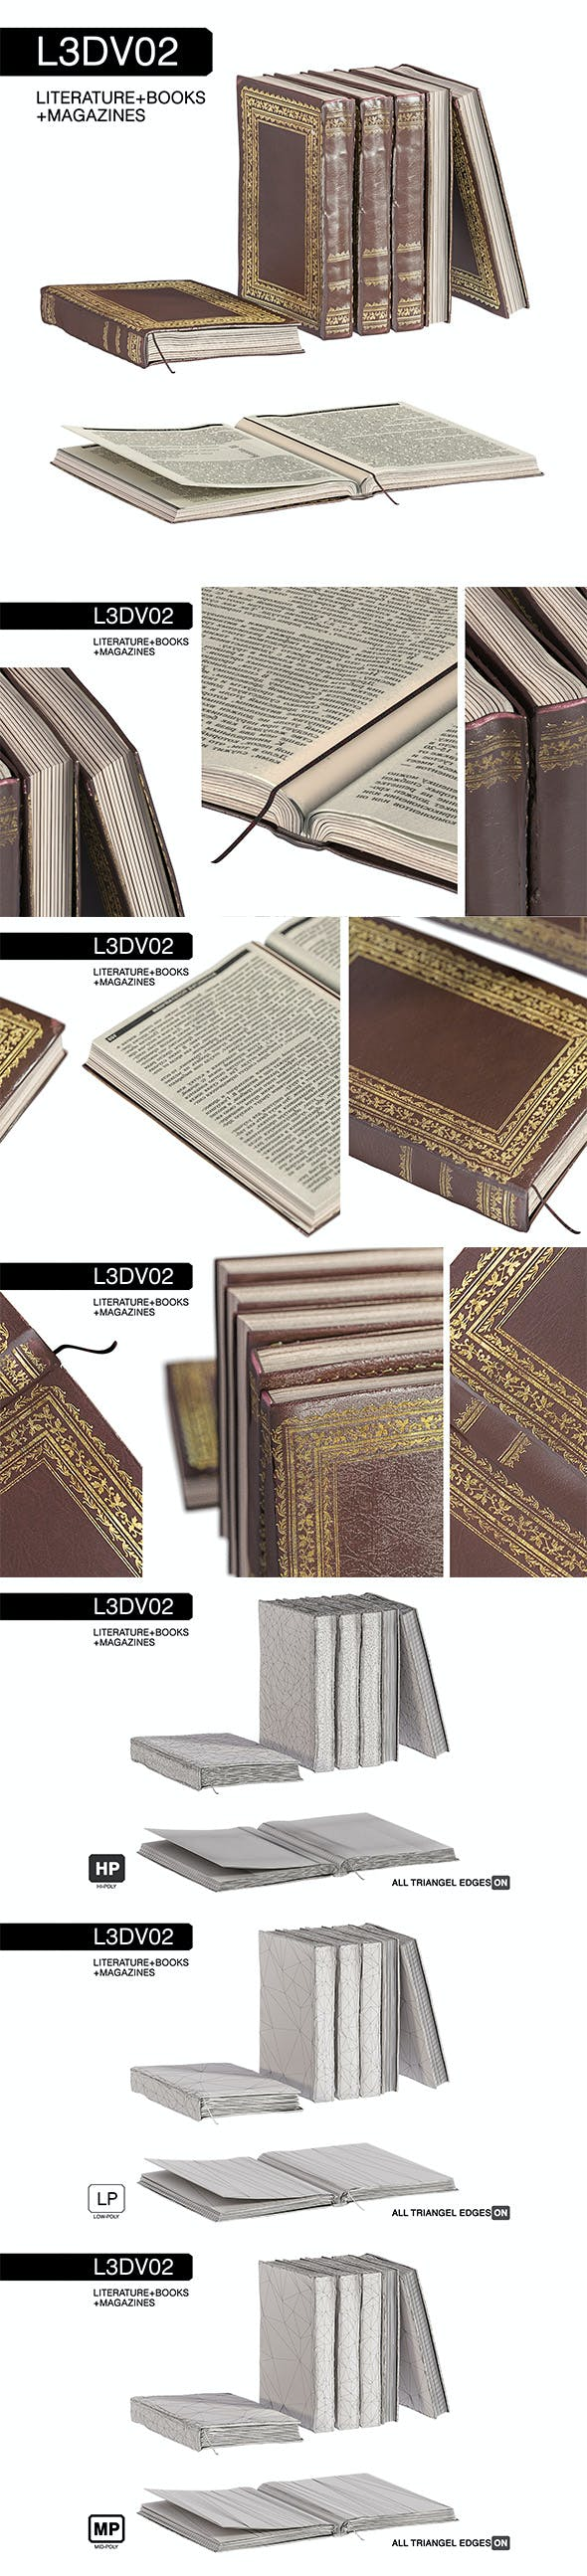 L3DV02G01 - old books set with 3 polygonal levels - 3DOcean Item for Sale